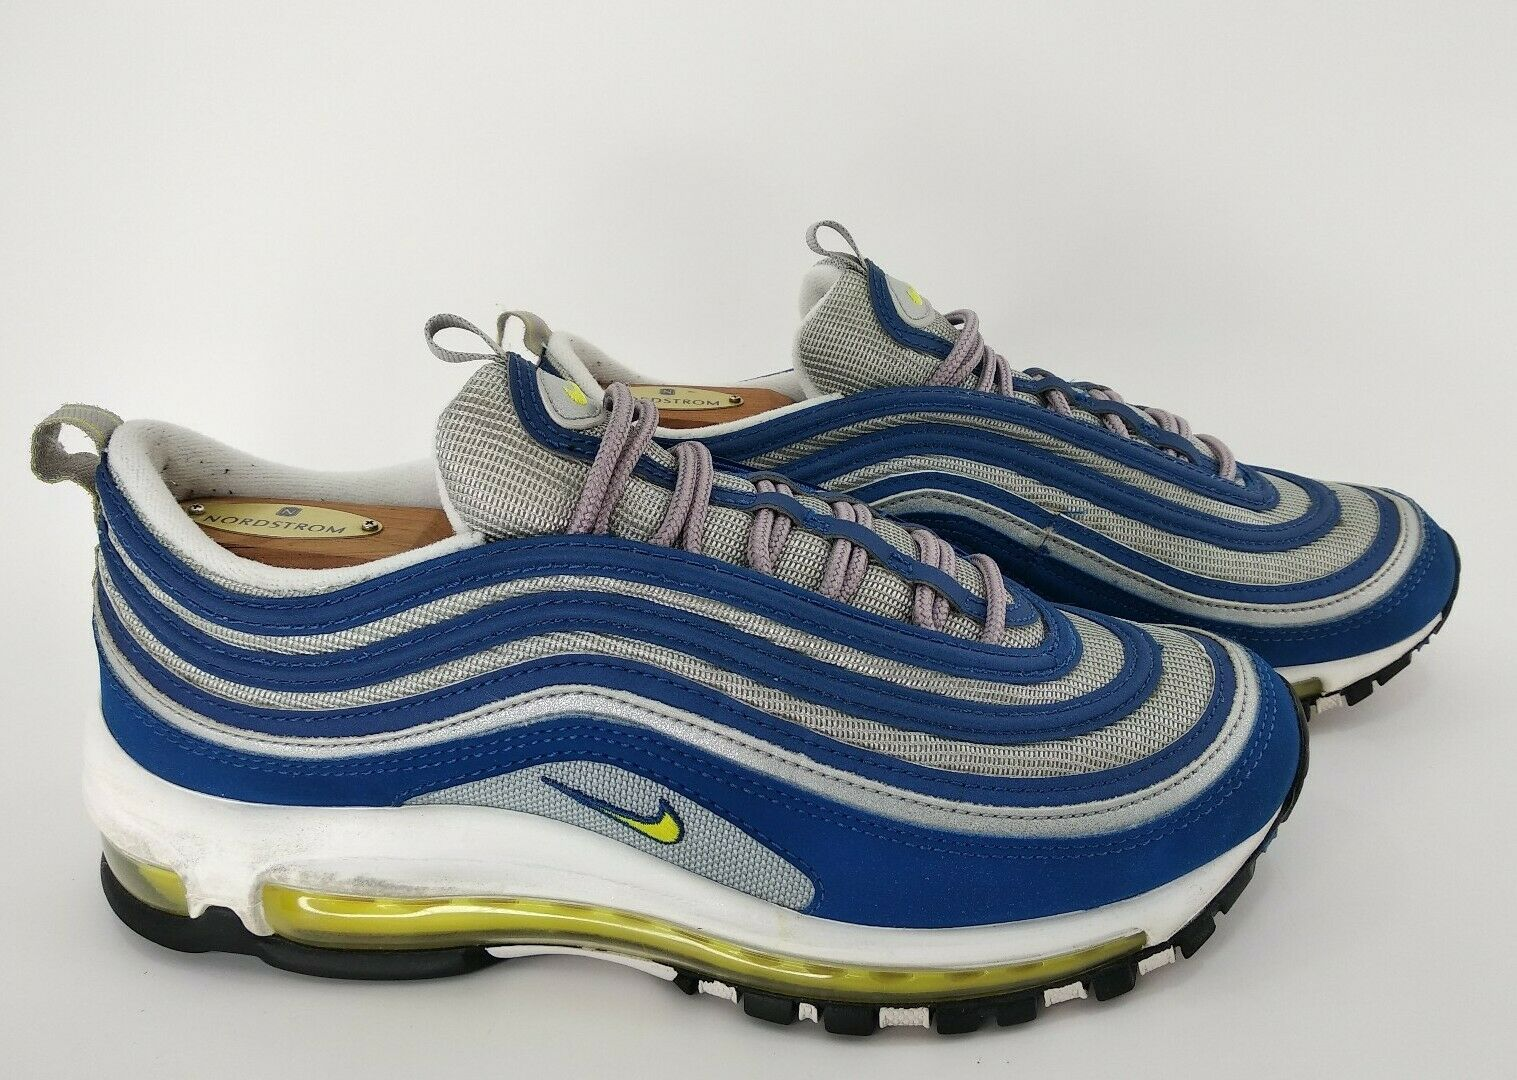 Details about VTG OG Nike Air Max '97 Atlantic Blue Voltage Yellow 1997 sz 8